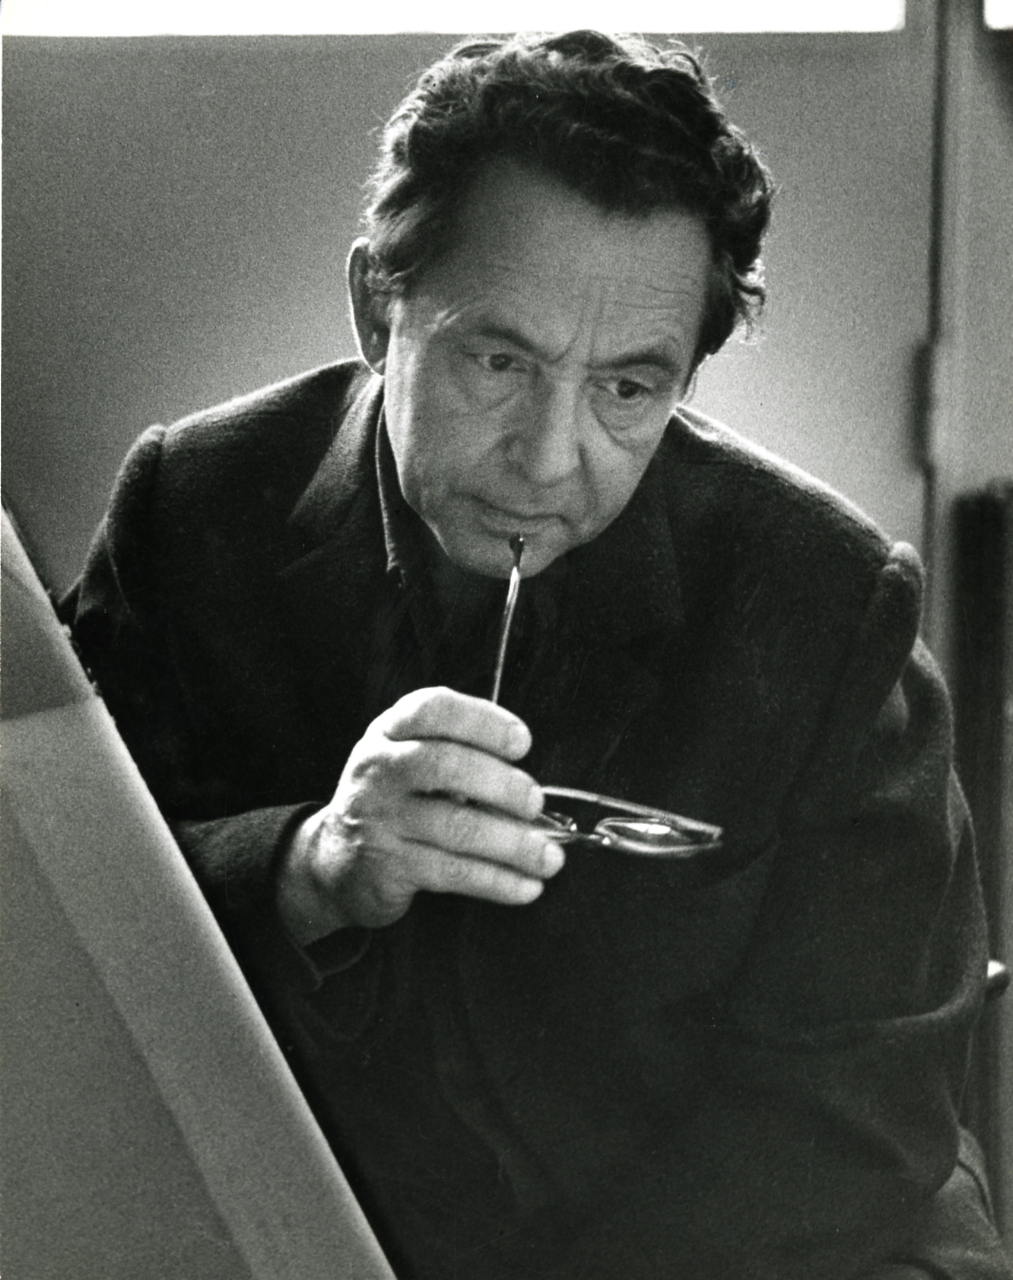 Image of Hans Hartung from Wikidata